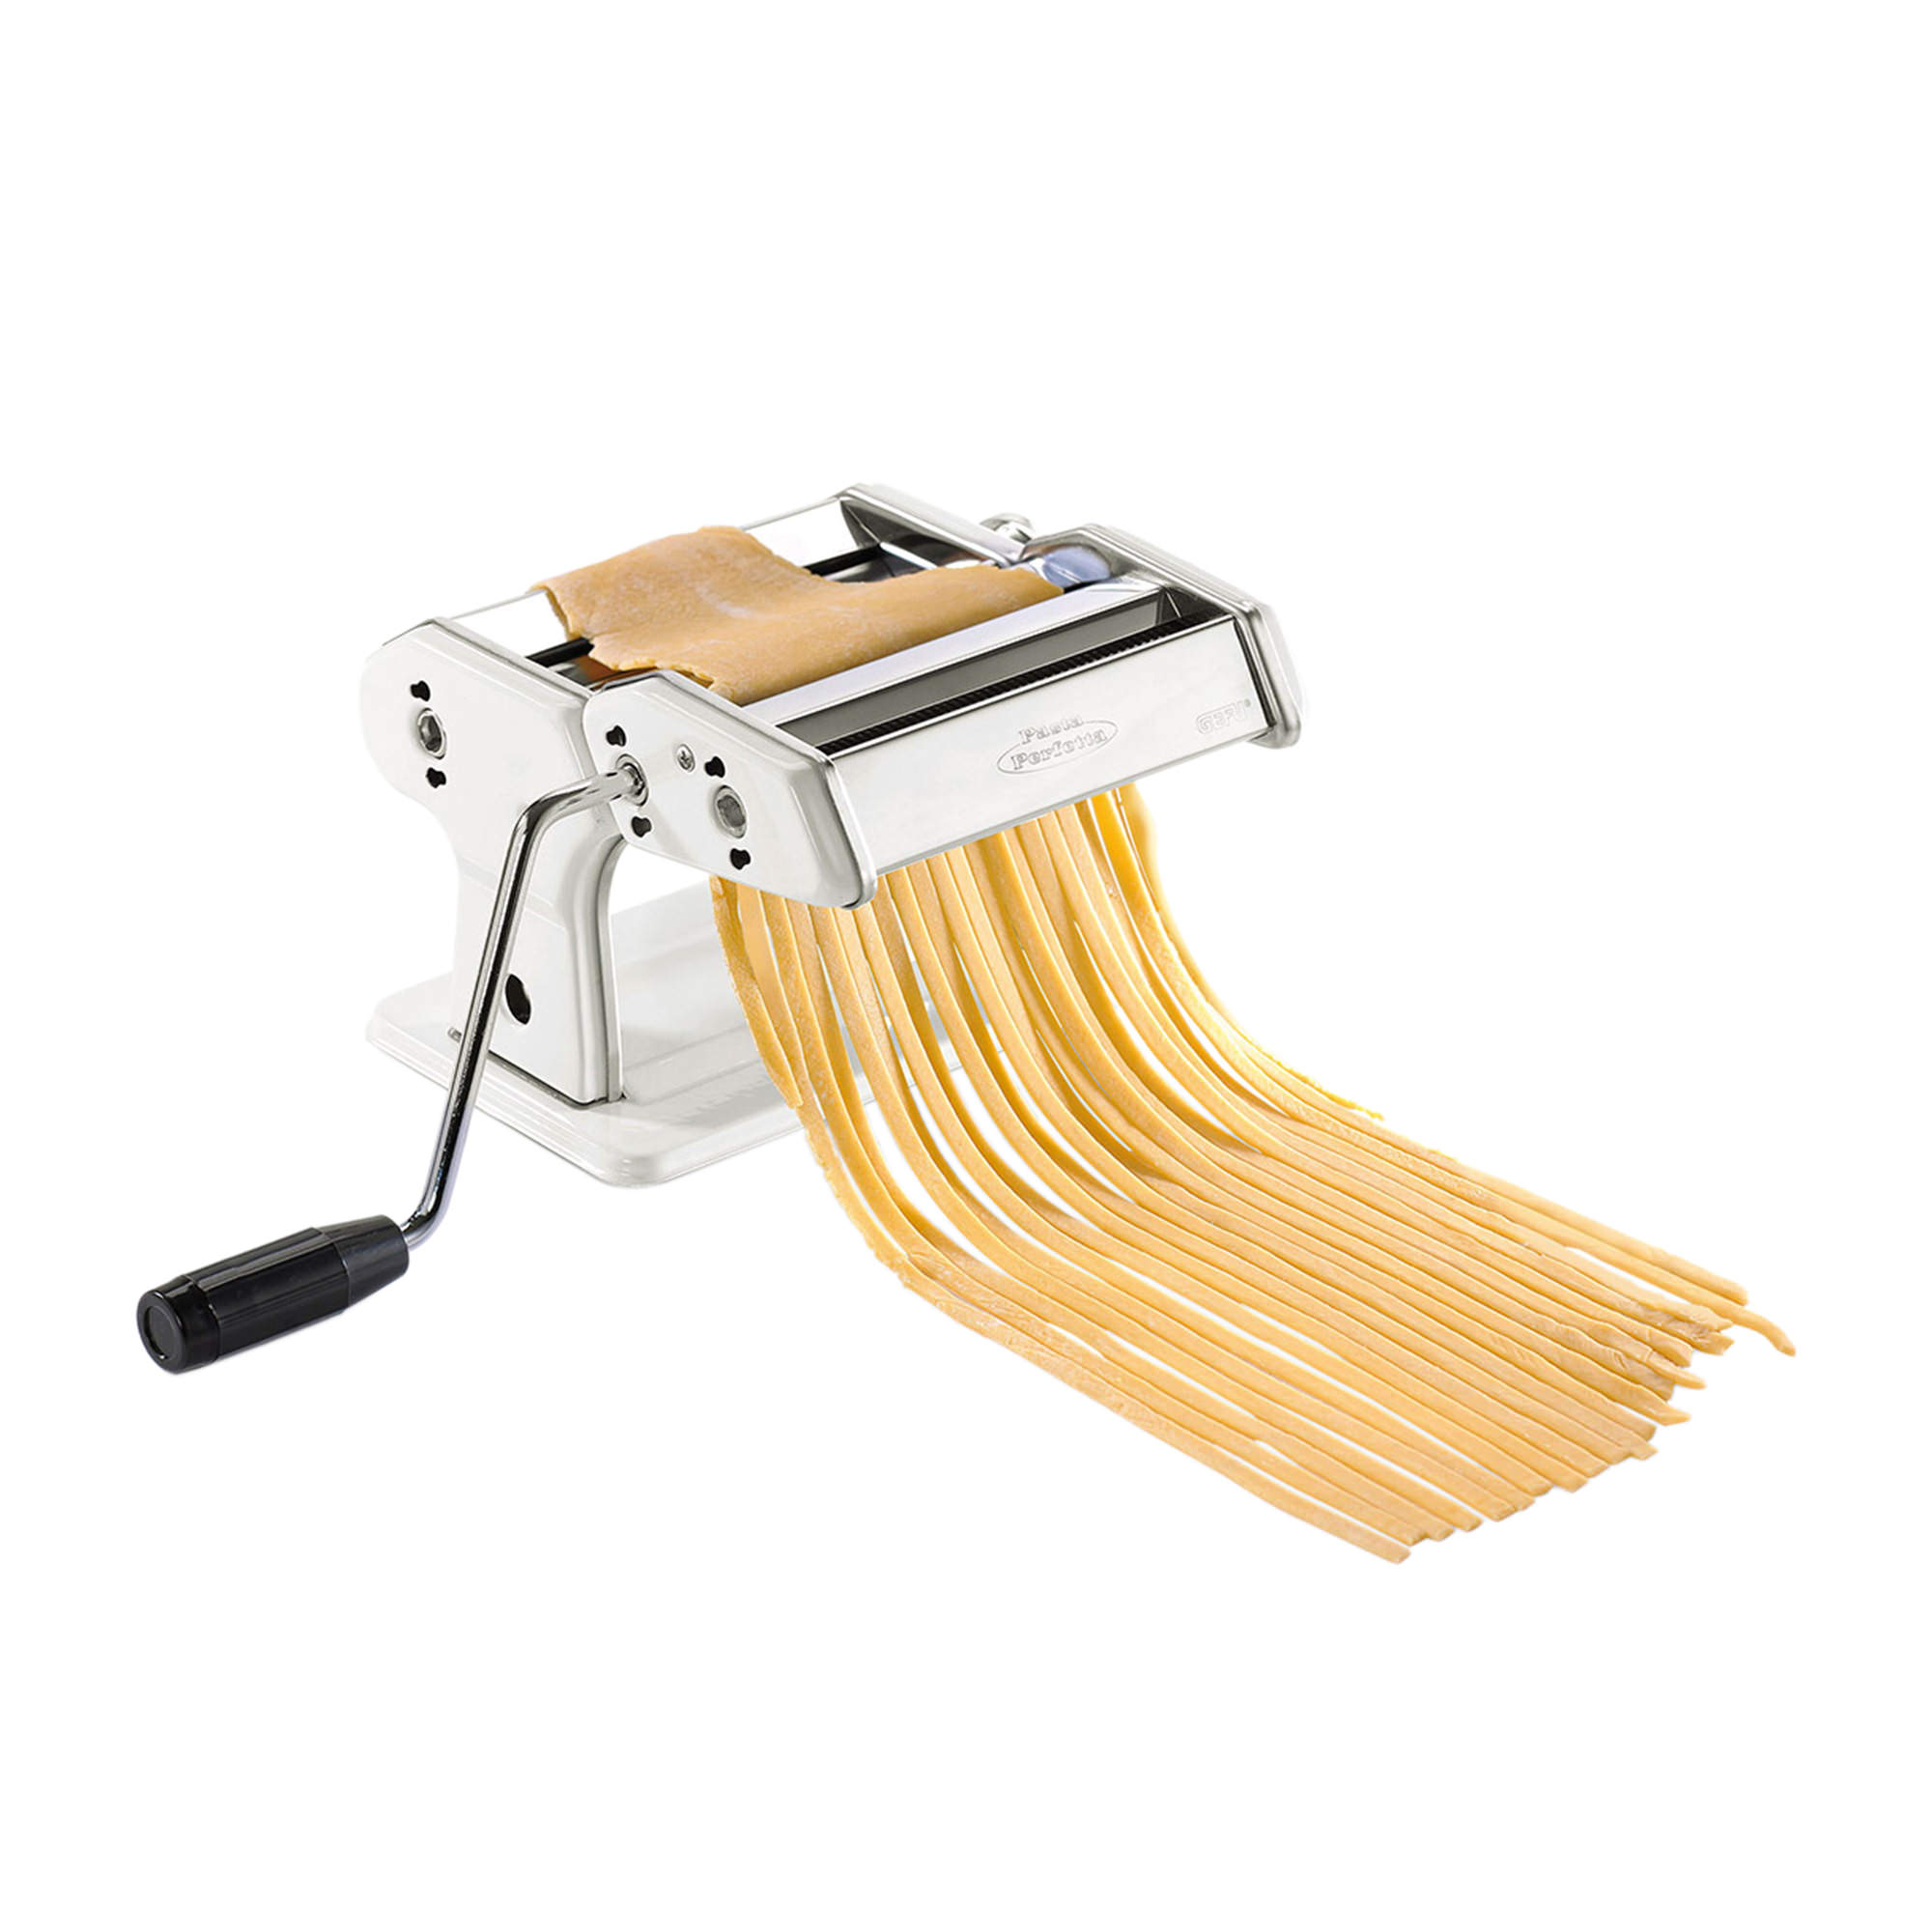 Gefu Perfetta Pasta Machine White